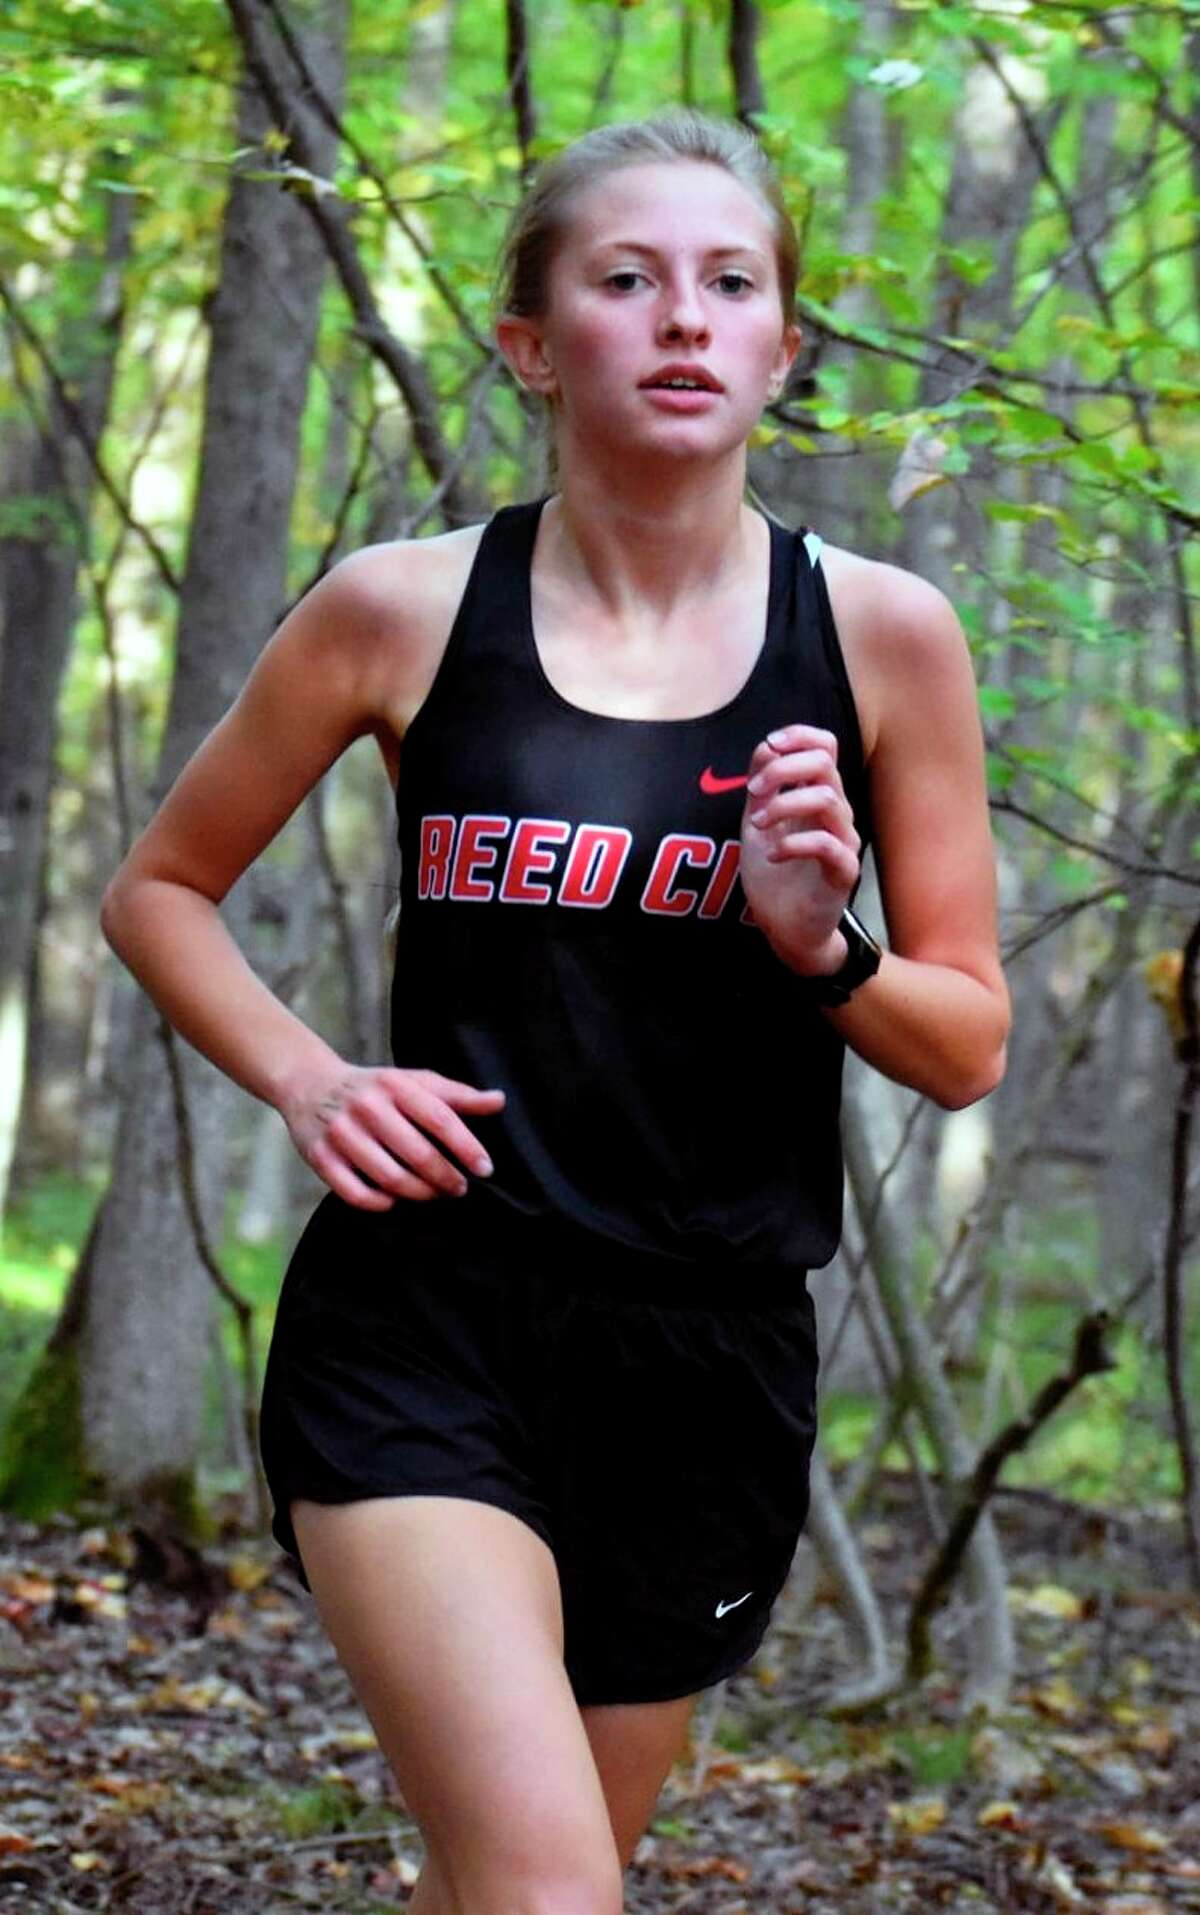 Brooke Miller of Reed City is turning in an impressive cross-country season for the Coyotes. (Courtesy photo)